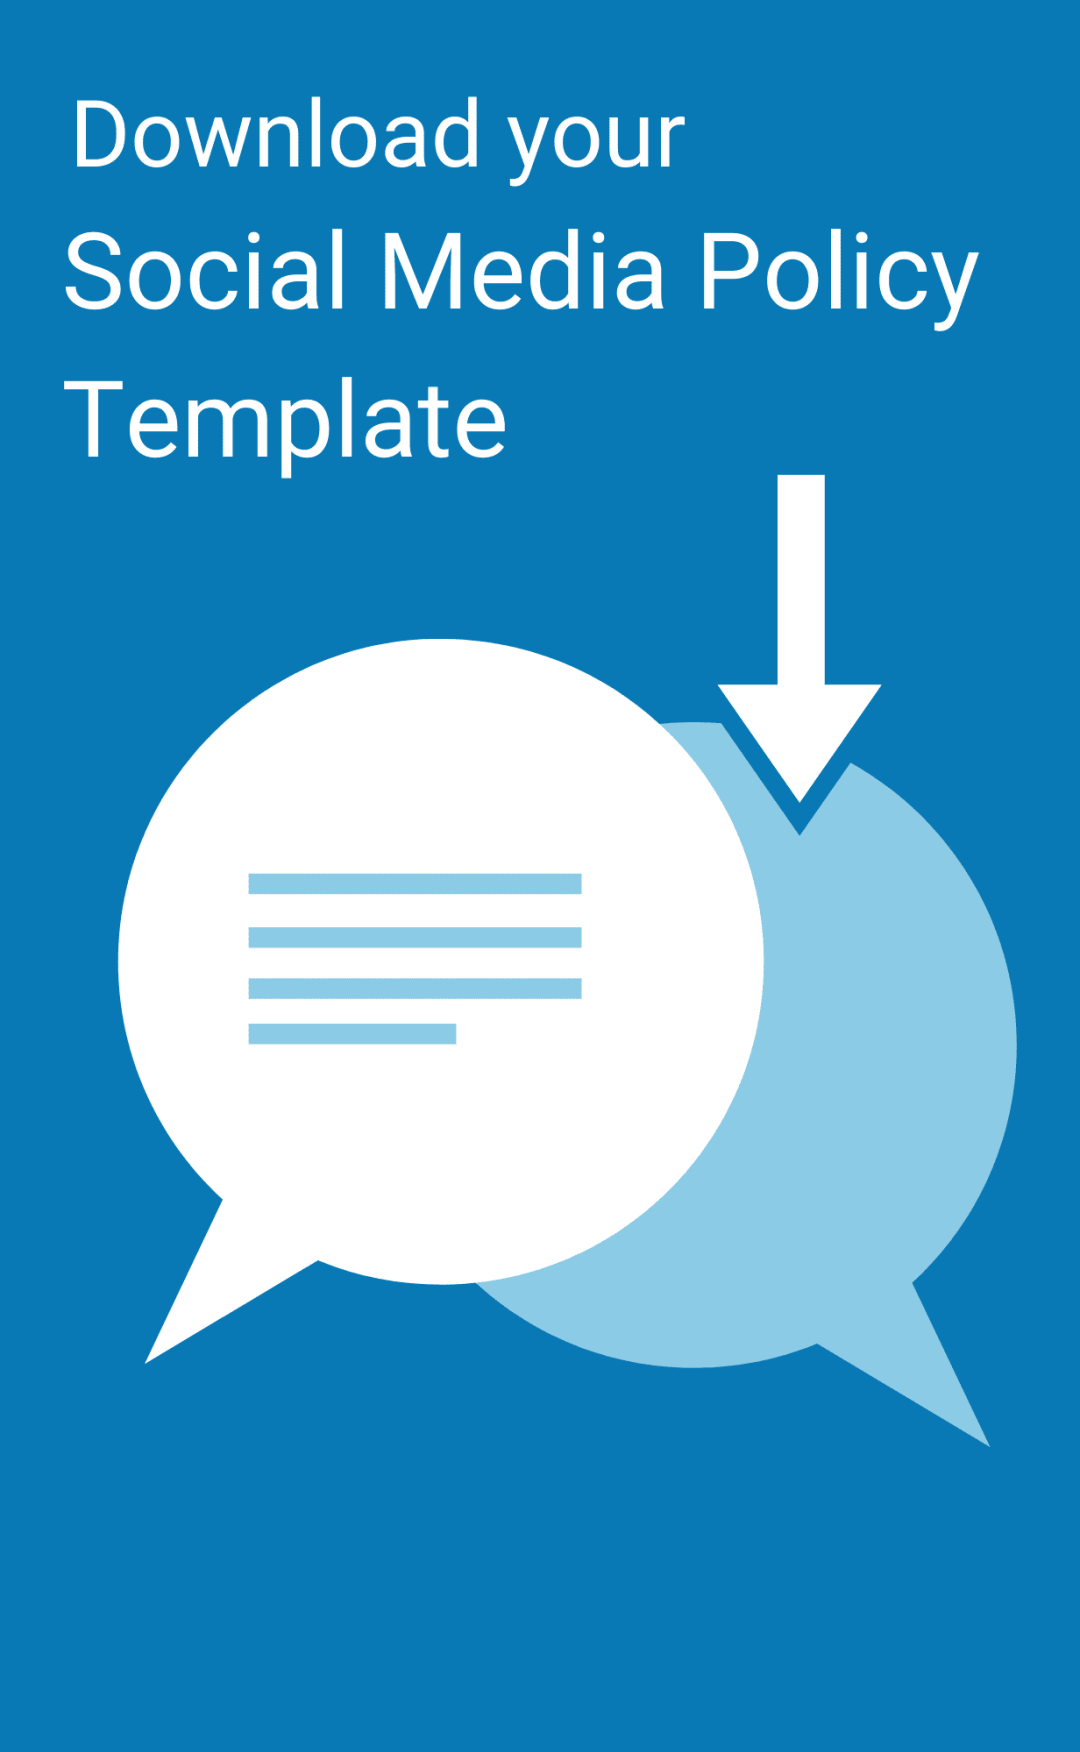 Download Your Social Media Policy Template